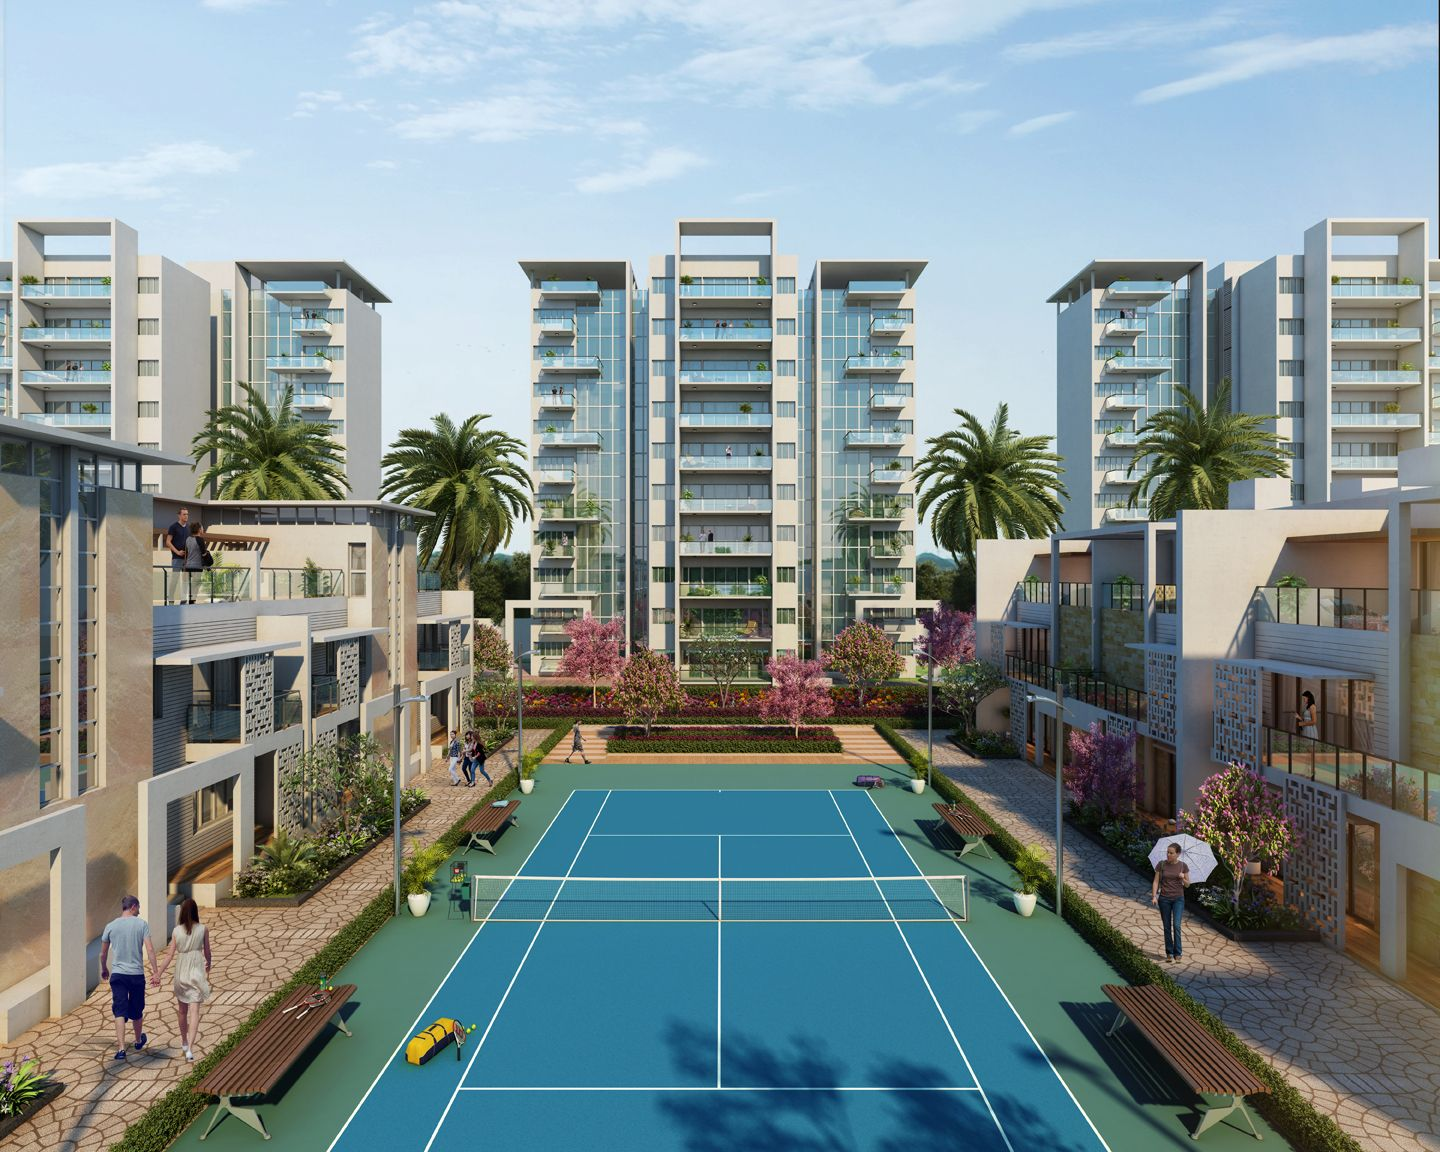 Godrej The Suites: Prominent Project True Investment